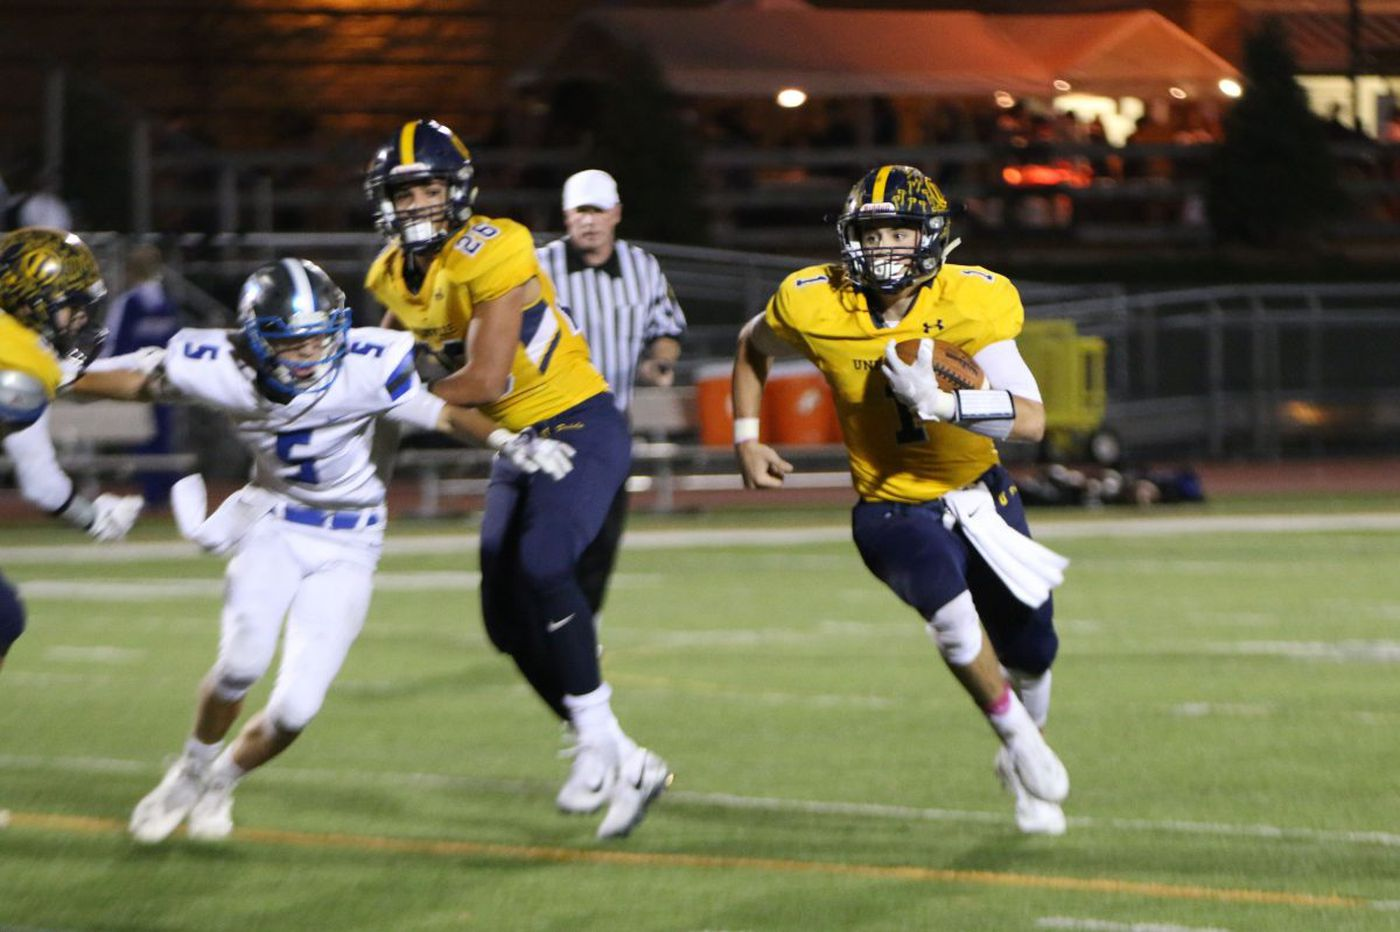 Joe Zubillaga, Unionville to battle Springfield-Delco for District 1 football crown